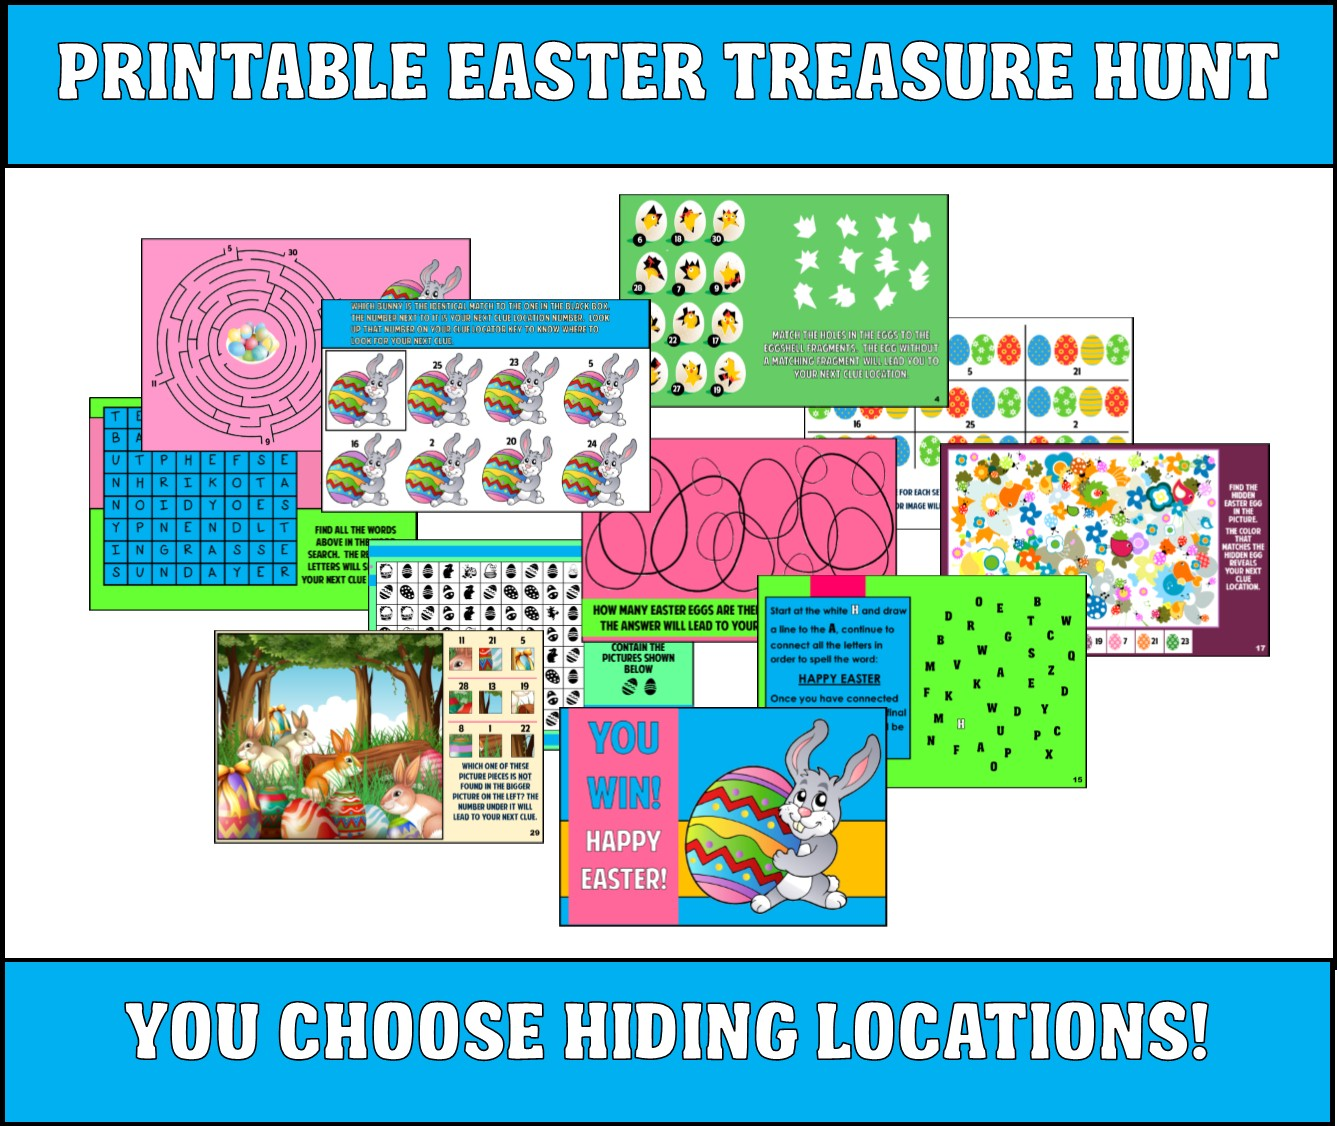 Printable Easter Treasure Hunt